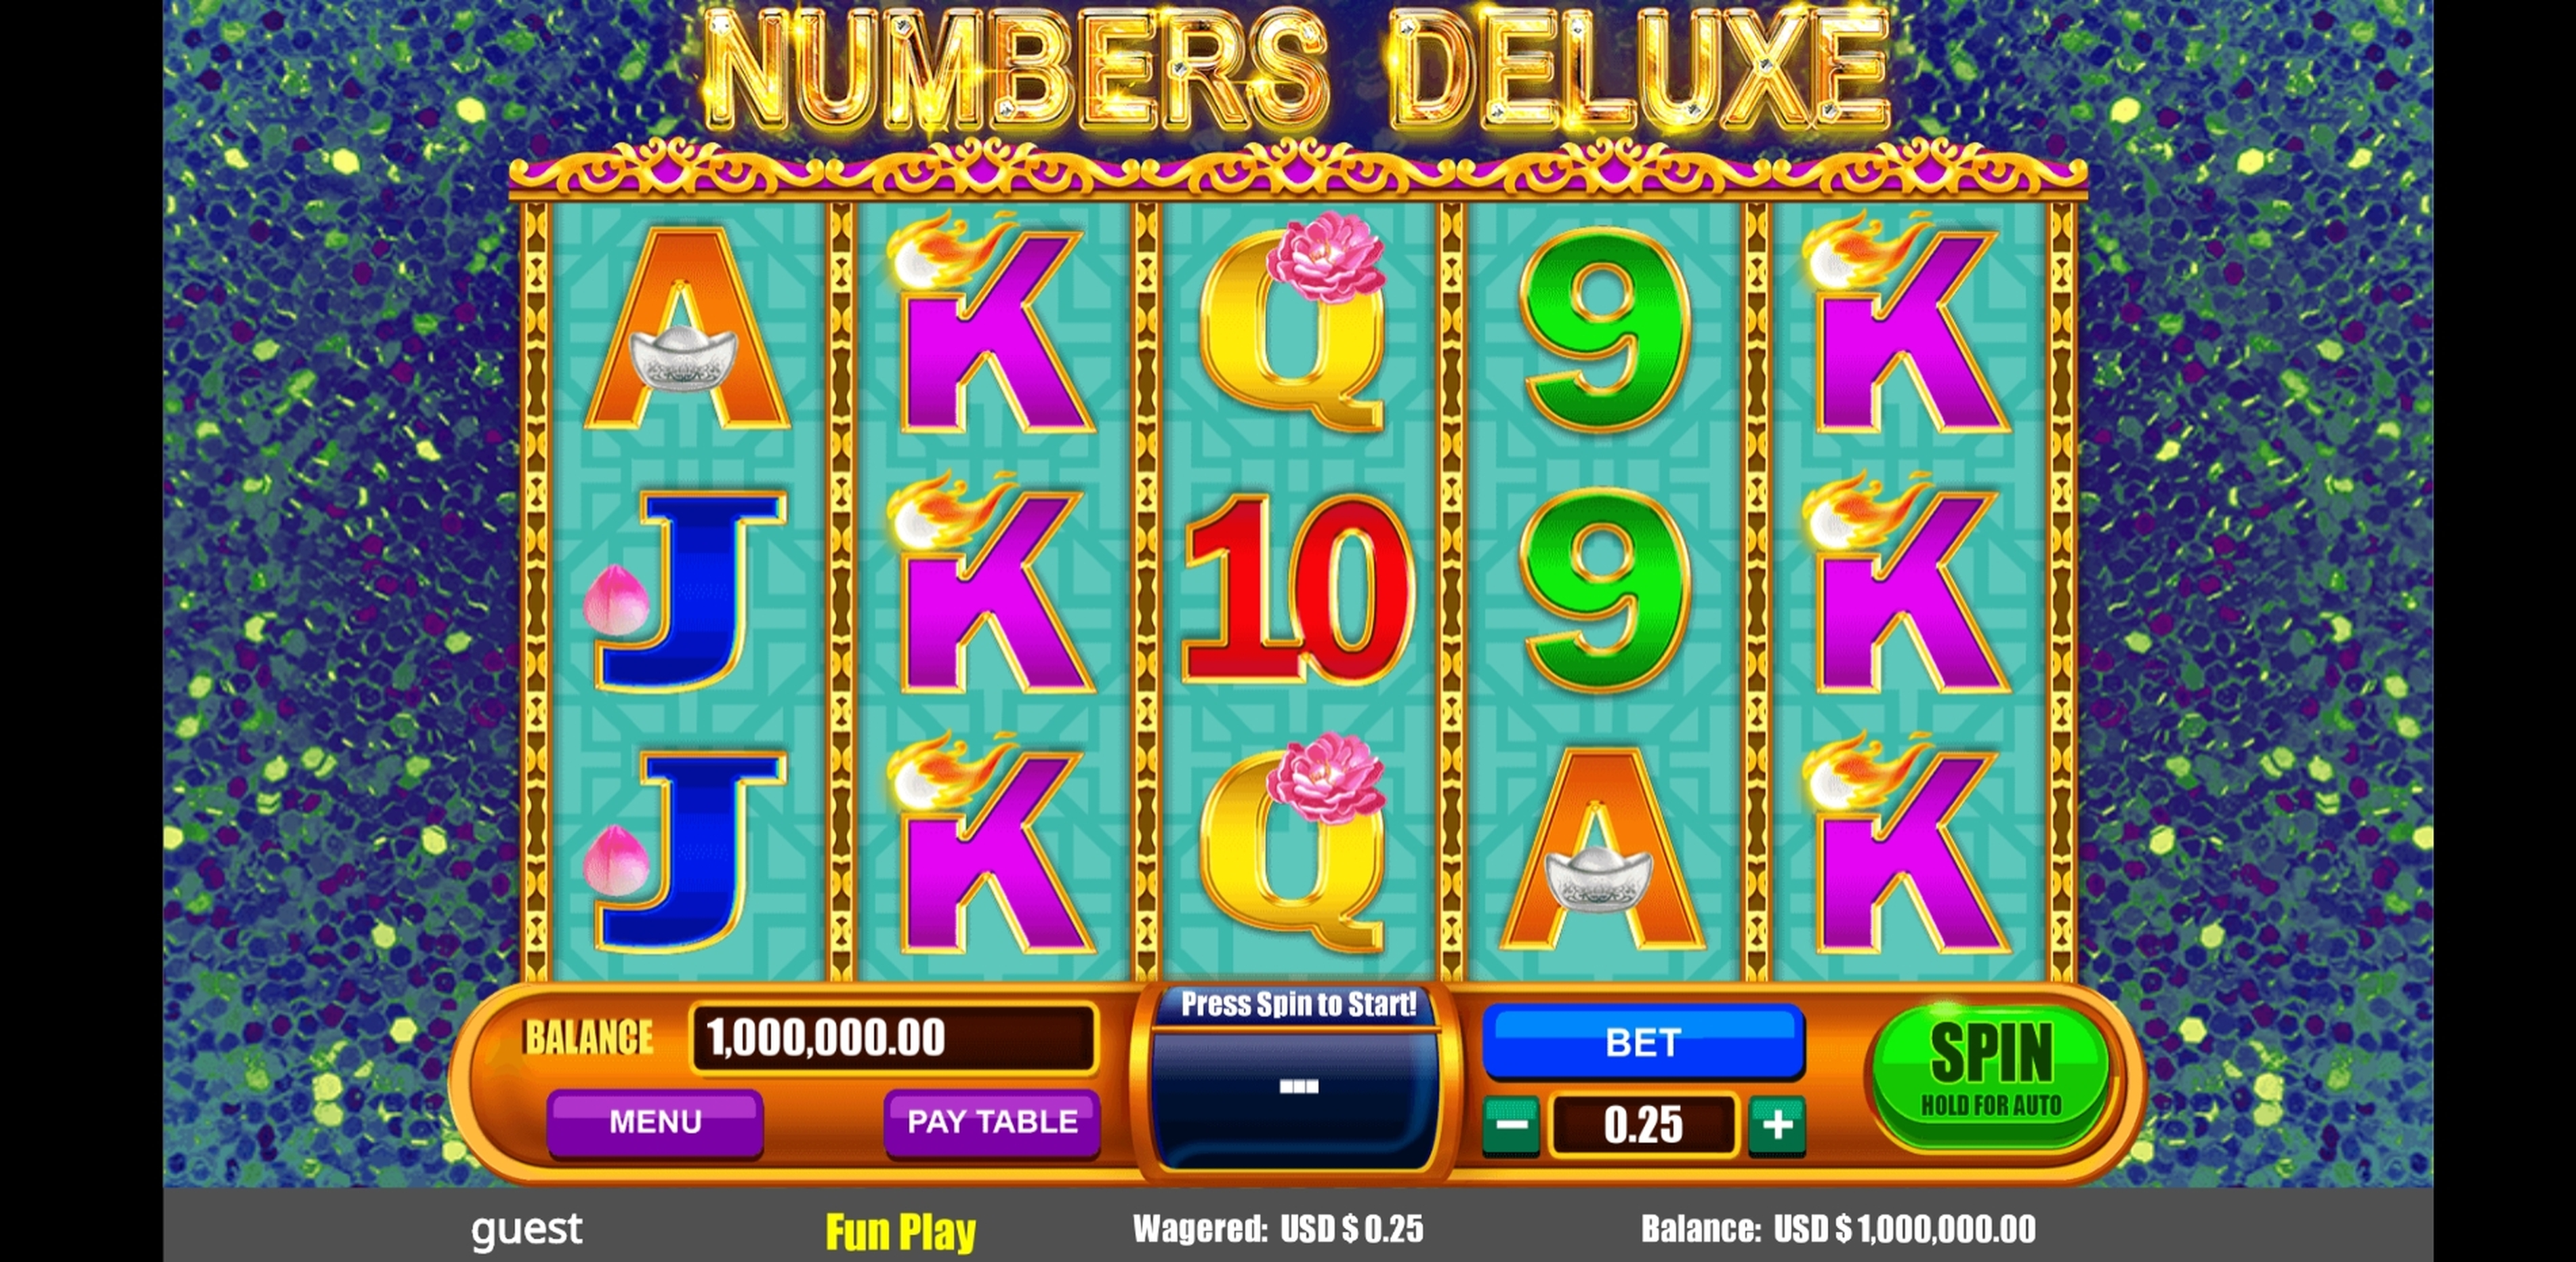 Reels in Numbers Deluxe Slot Game by August Gaming